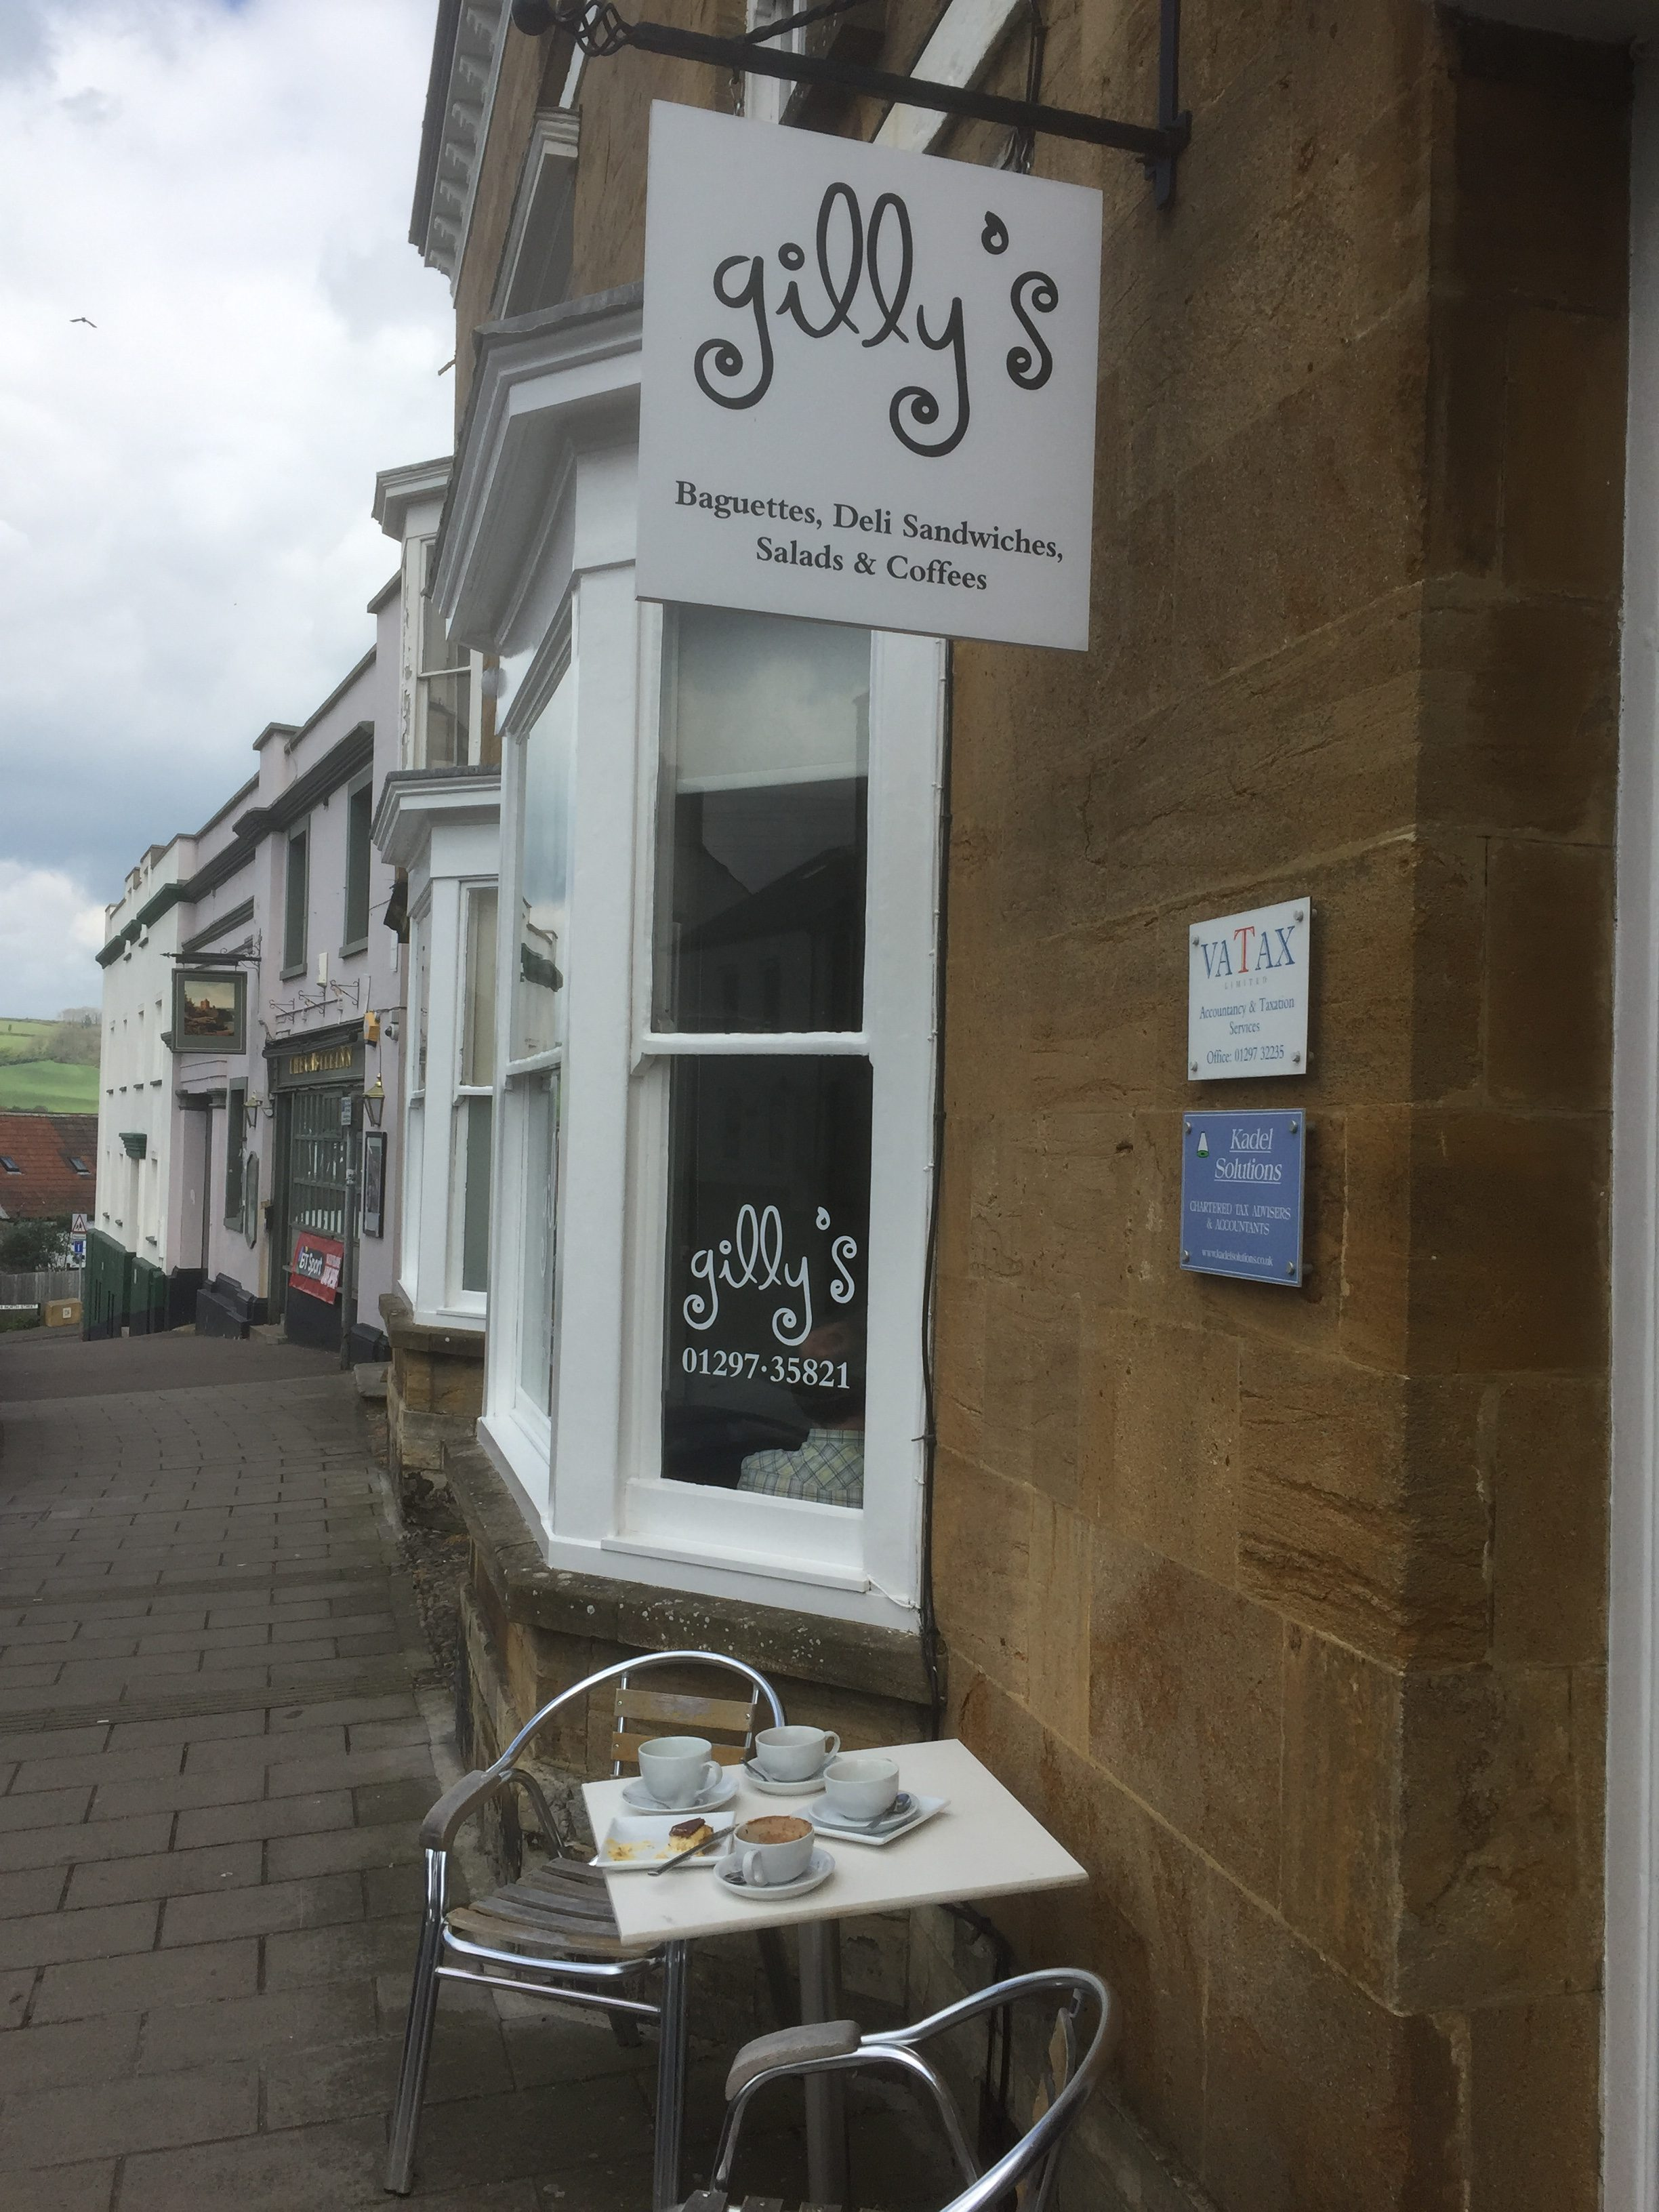 Gilly's Cafe